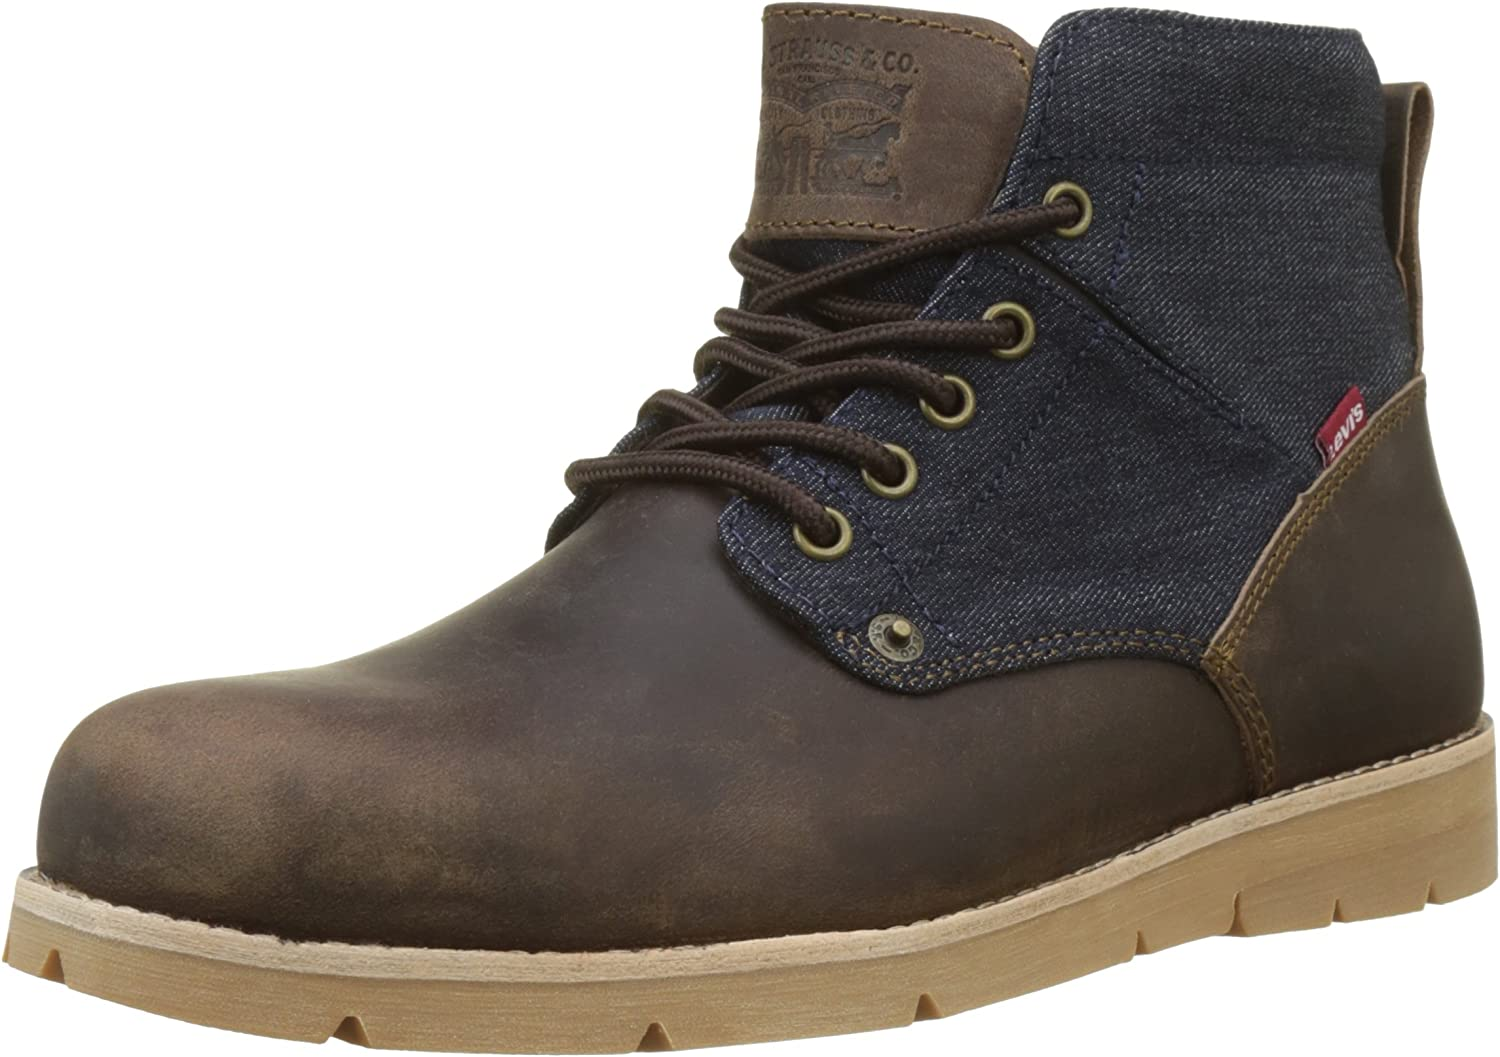 TALLA 43 EU. Levi´S Shoes - Boots Jax 225129-874-29 - Dark Brown